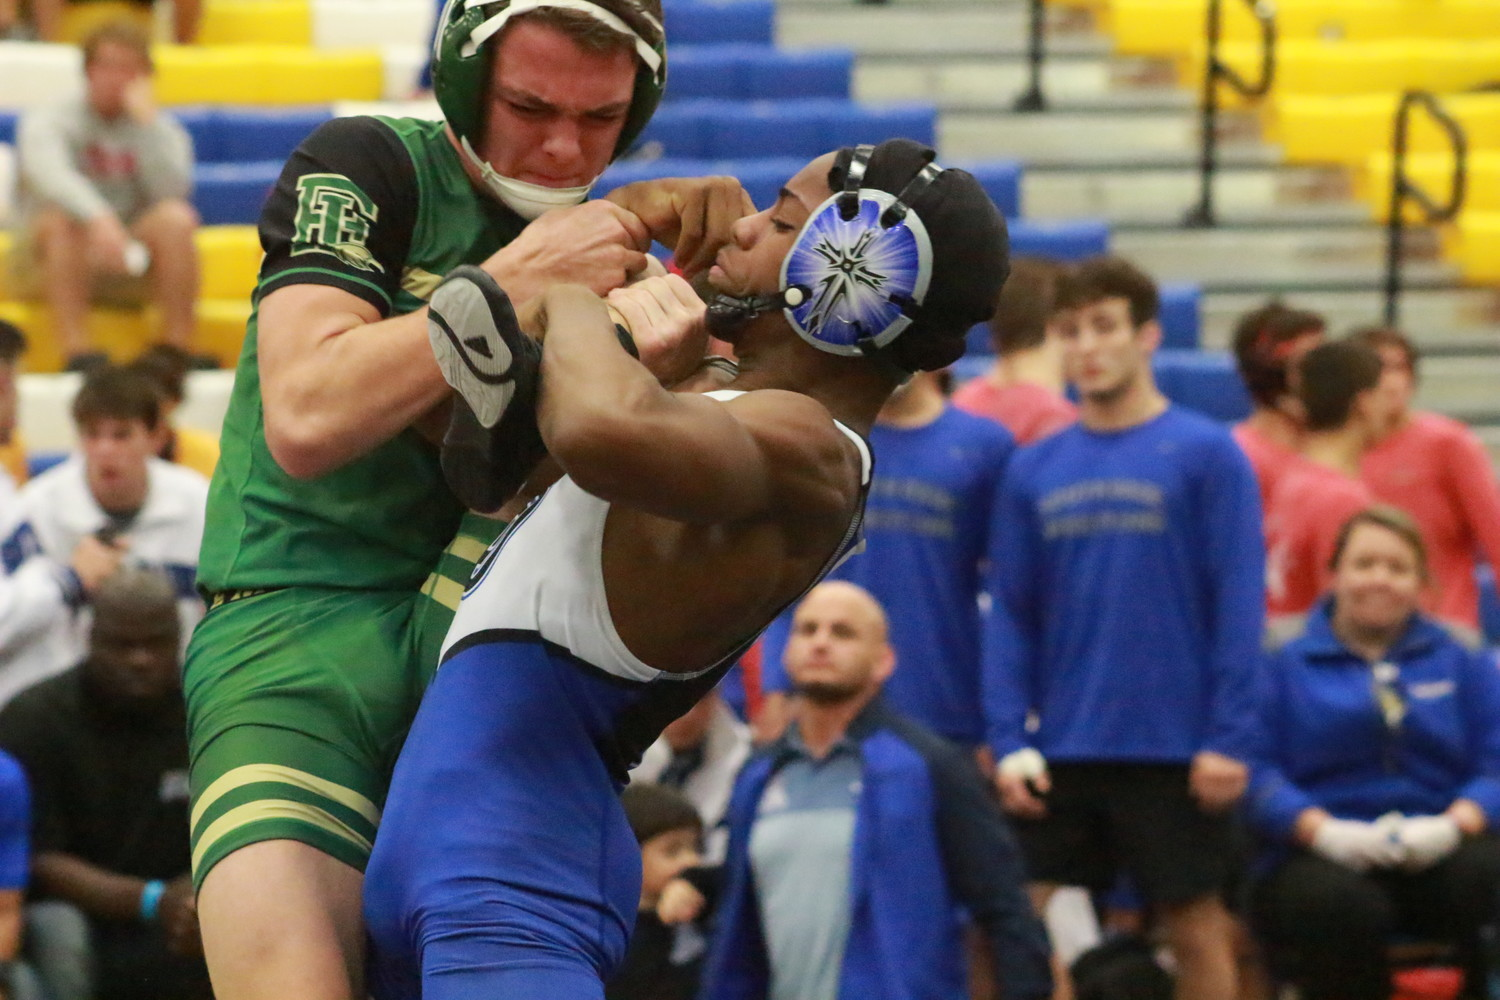 Fleming Island High sophomore Tyler Williams had some tough going against South Dade's Joshua Swan who won convincingly 17-6 at 138 pounds.